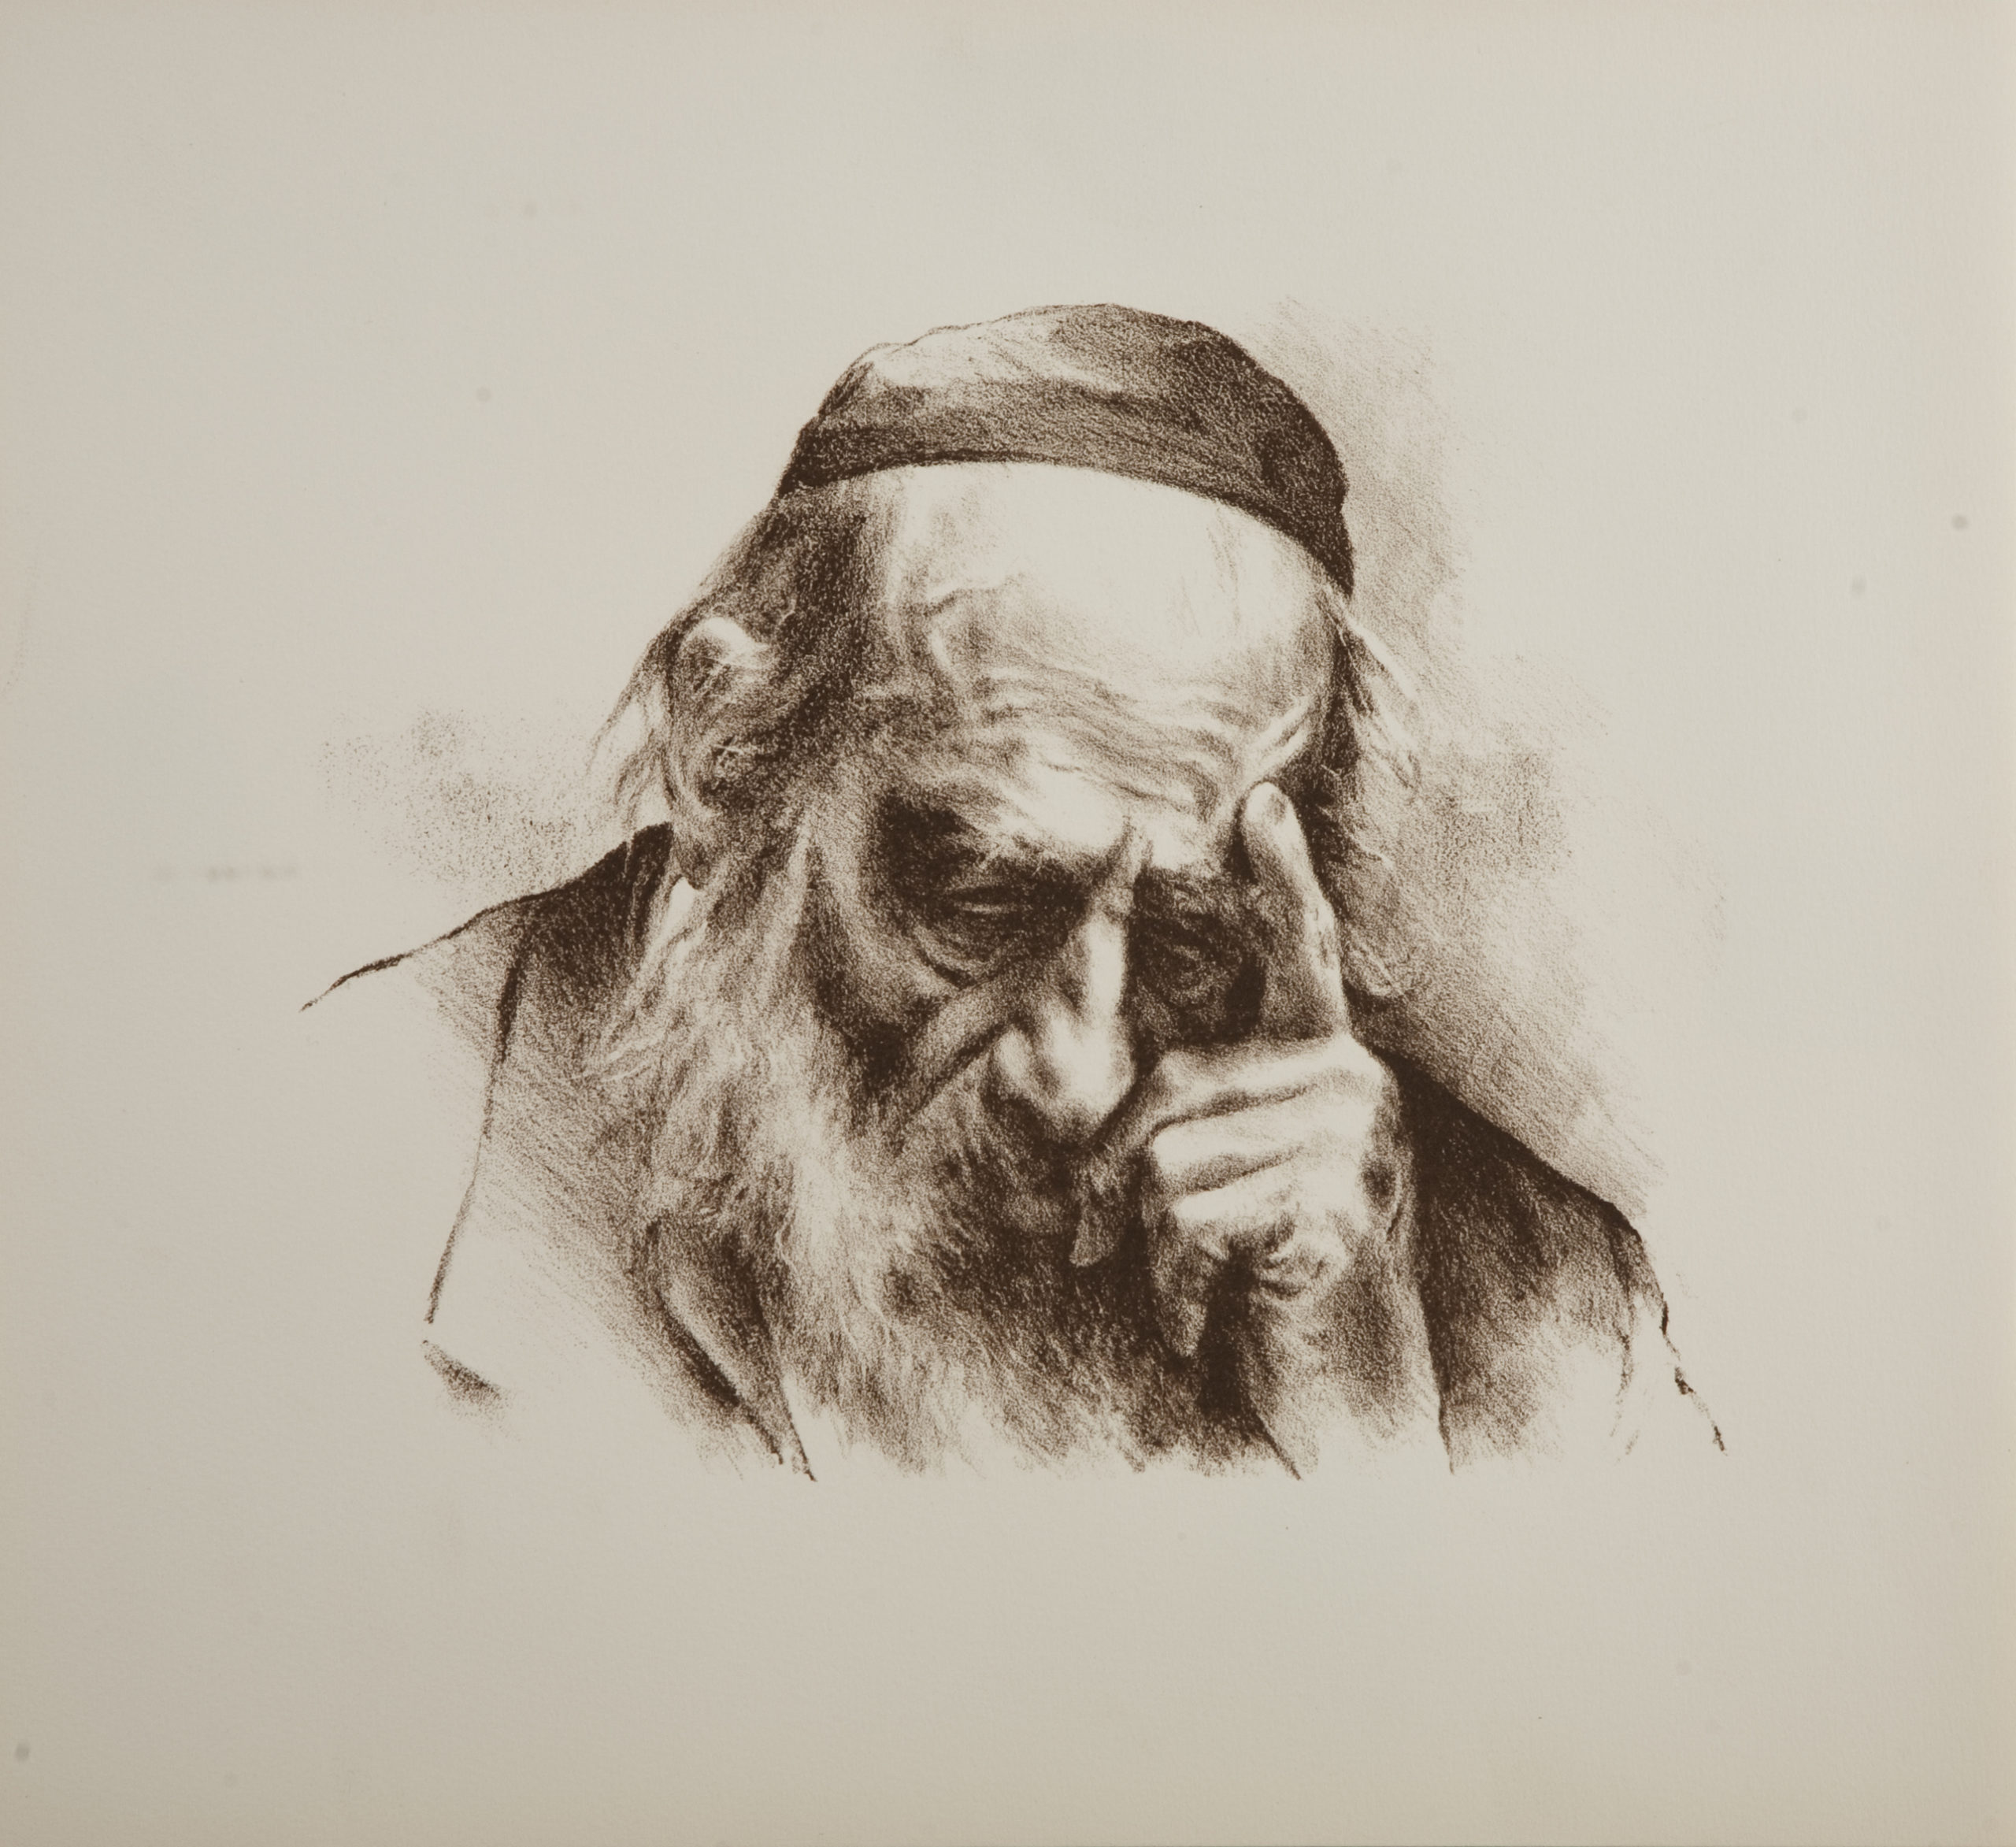 L34S Thinker Left Hand - Sepia - Lithograph - 17.25 x 15.5 - No Frame - $340